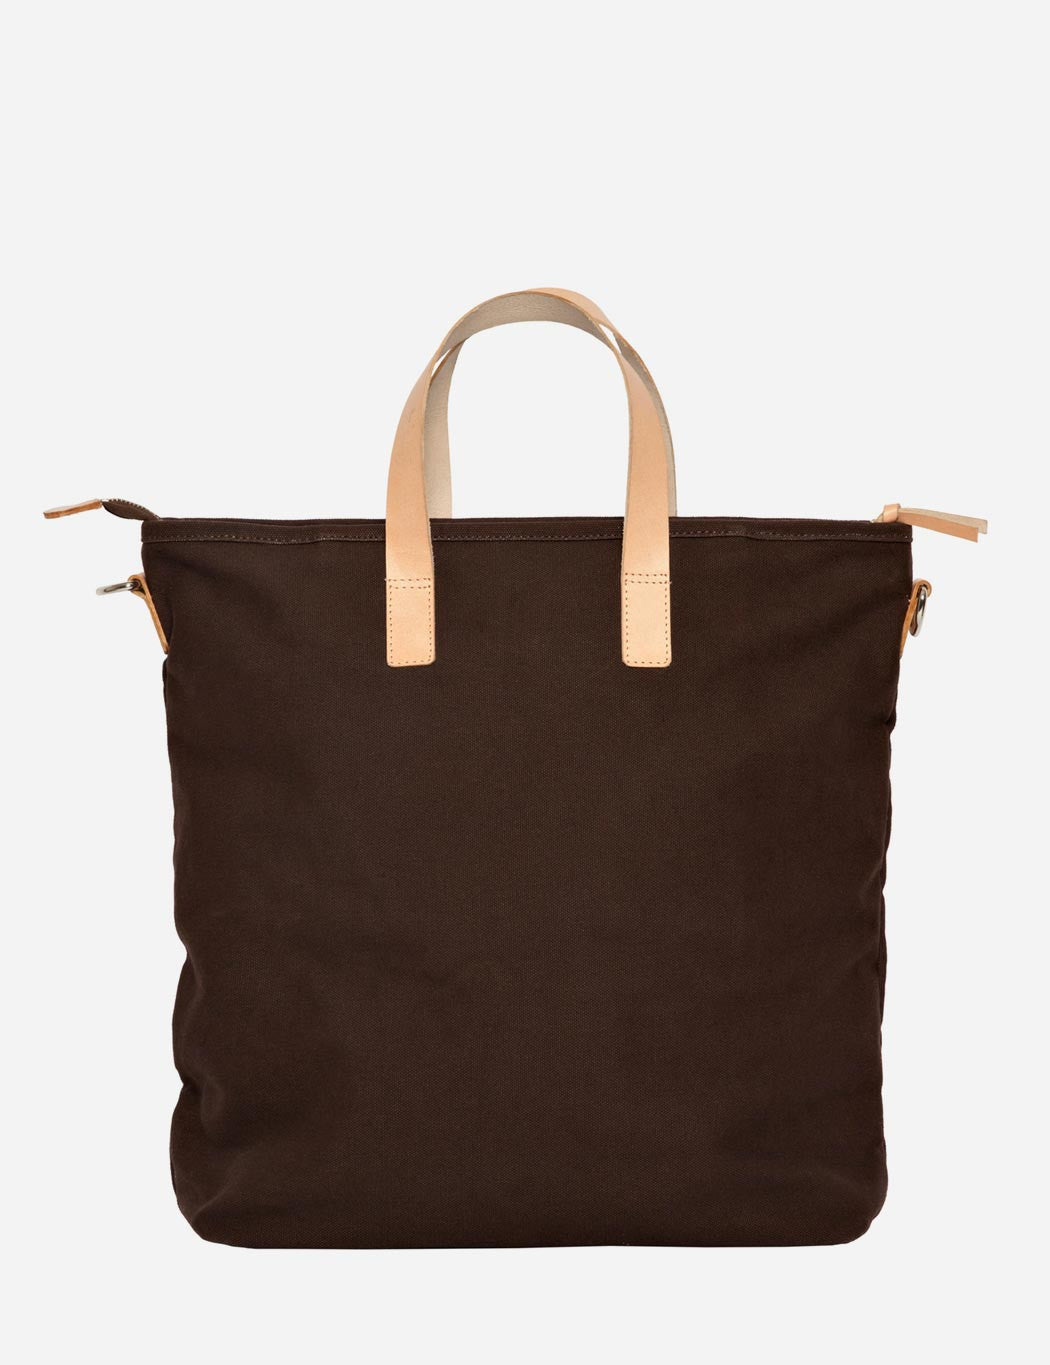 Sandqvist Gudmund Canvas Tote Bag - Brown